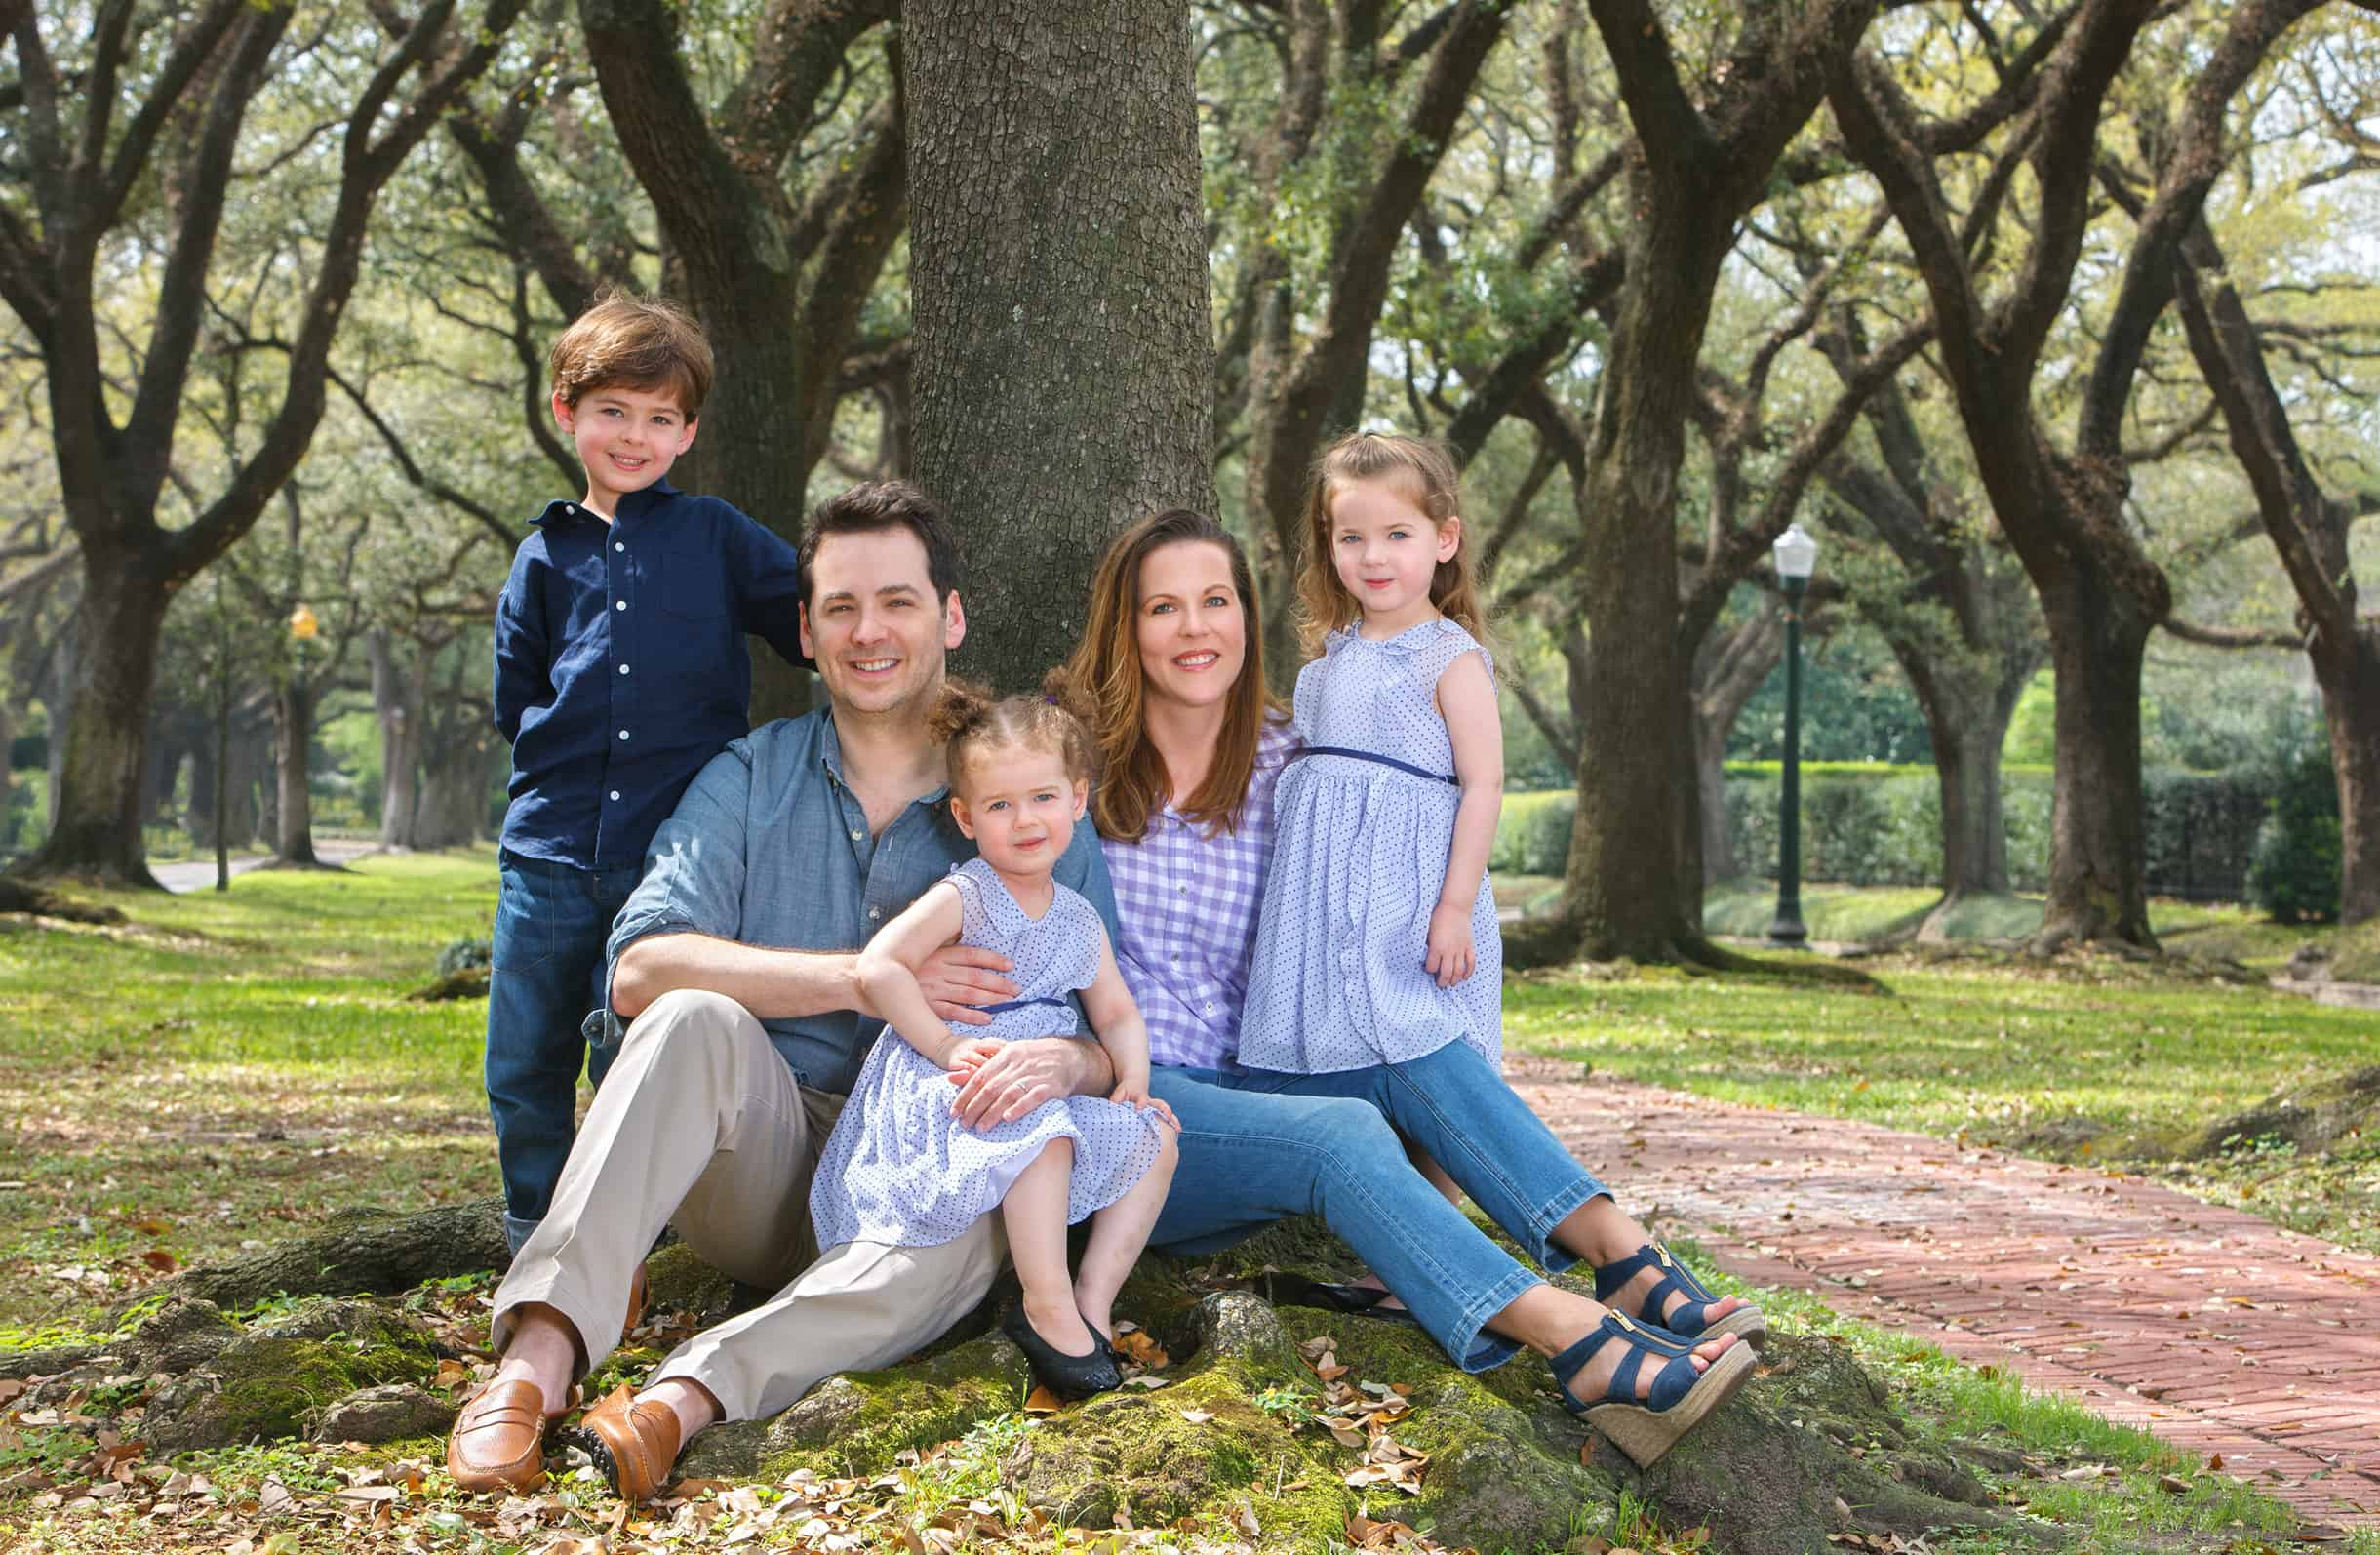 North_and_South_BLVD_Family_Portraits_Houston_Photographer